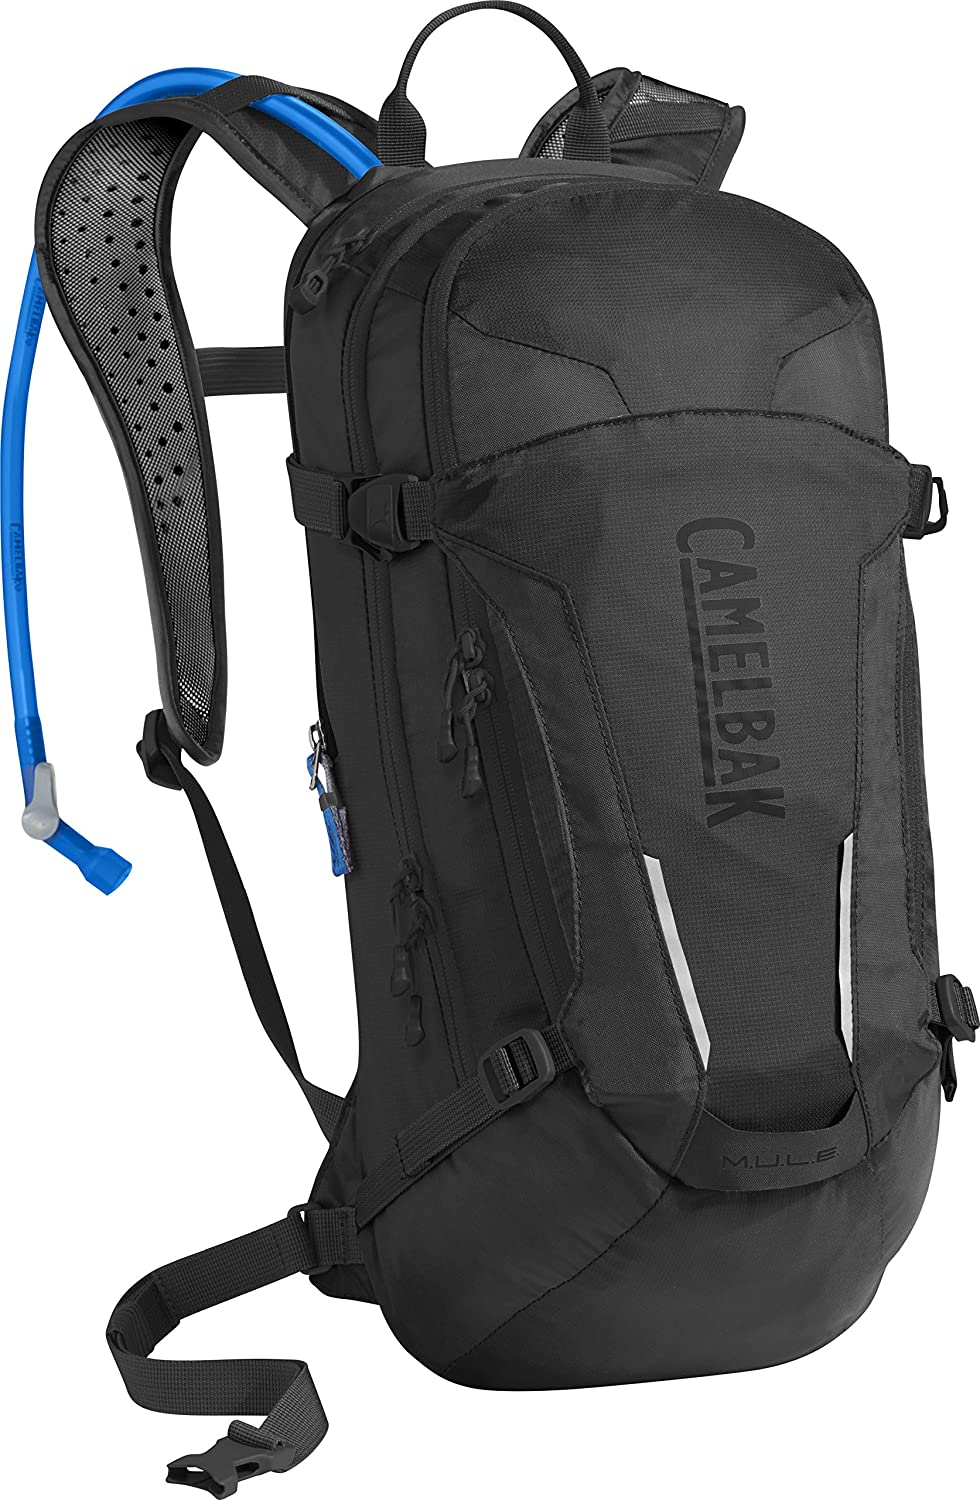 CamelBak MULE Hydration Pack review